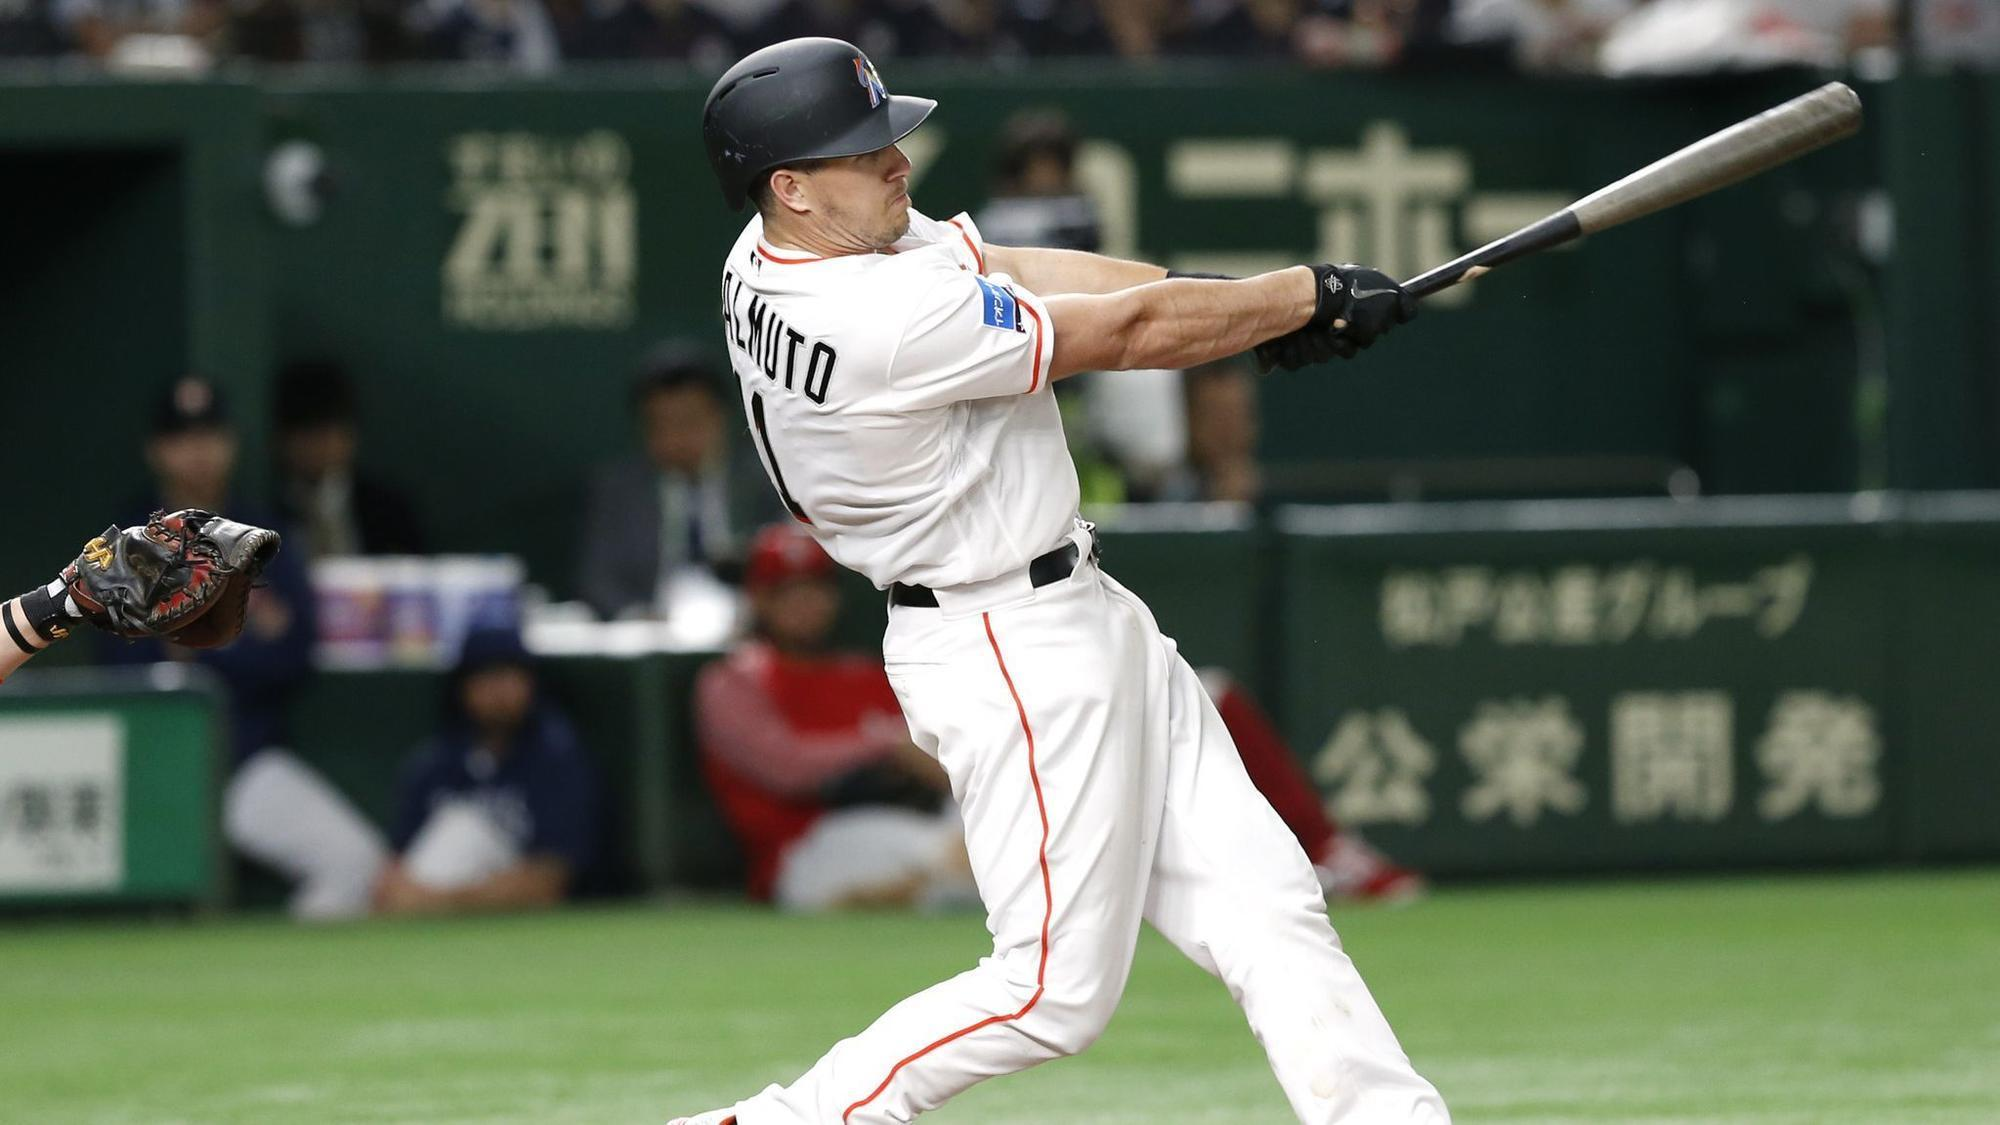 Sd-sp-padres-winter-meetings-trades-free-agency-realmuto-gray-1207